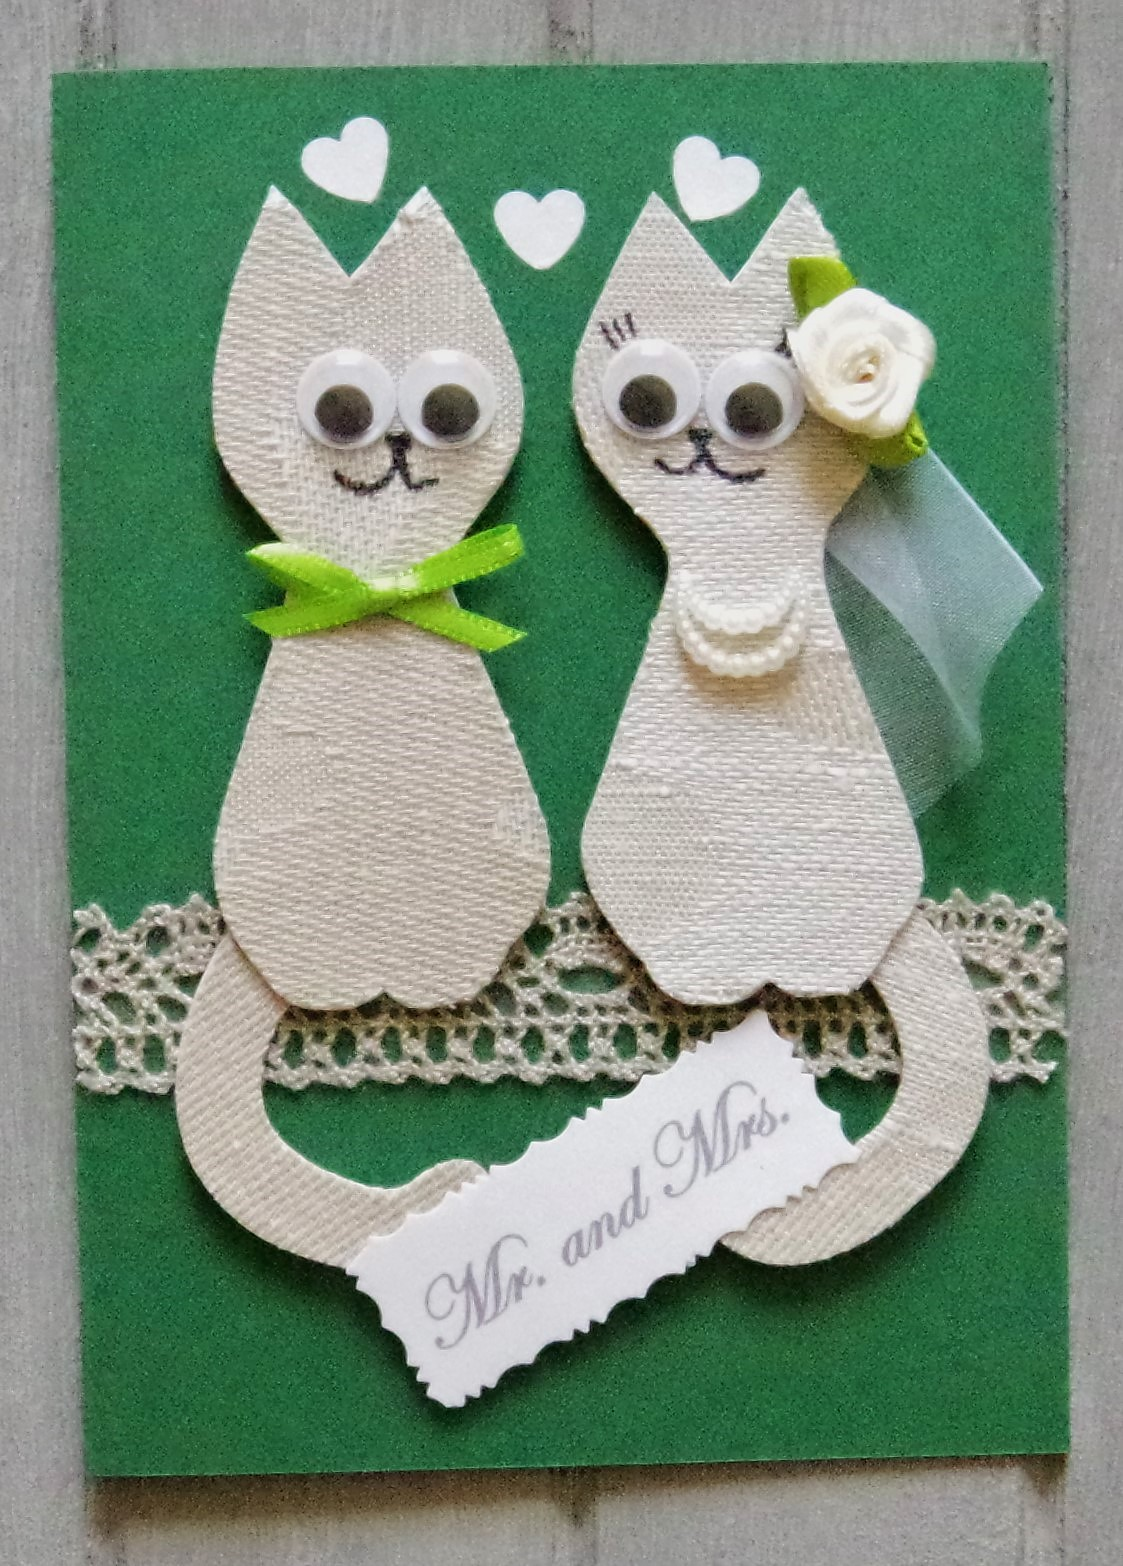 Mr. and Mrs. 3D linen cats.